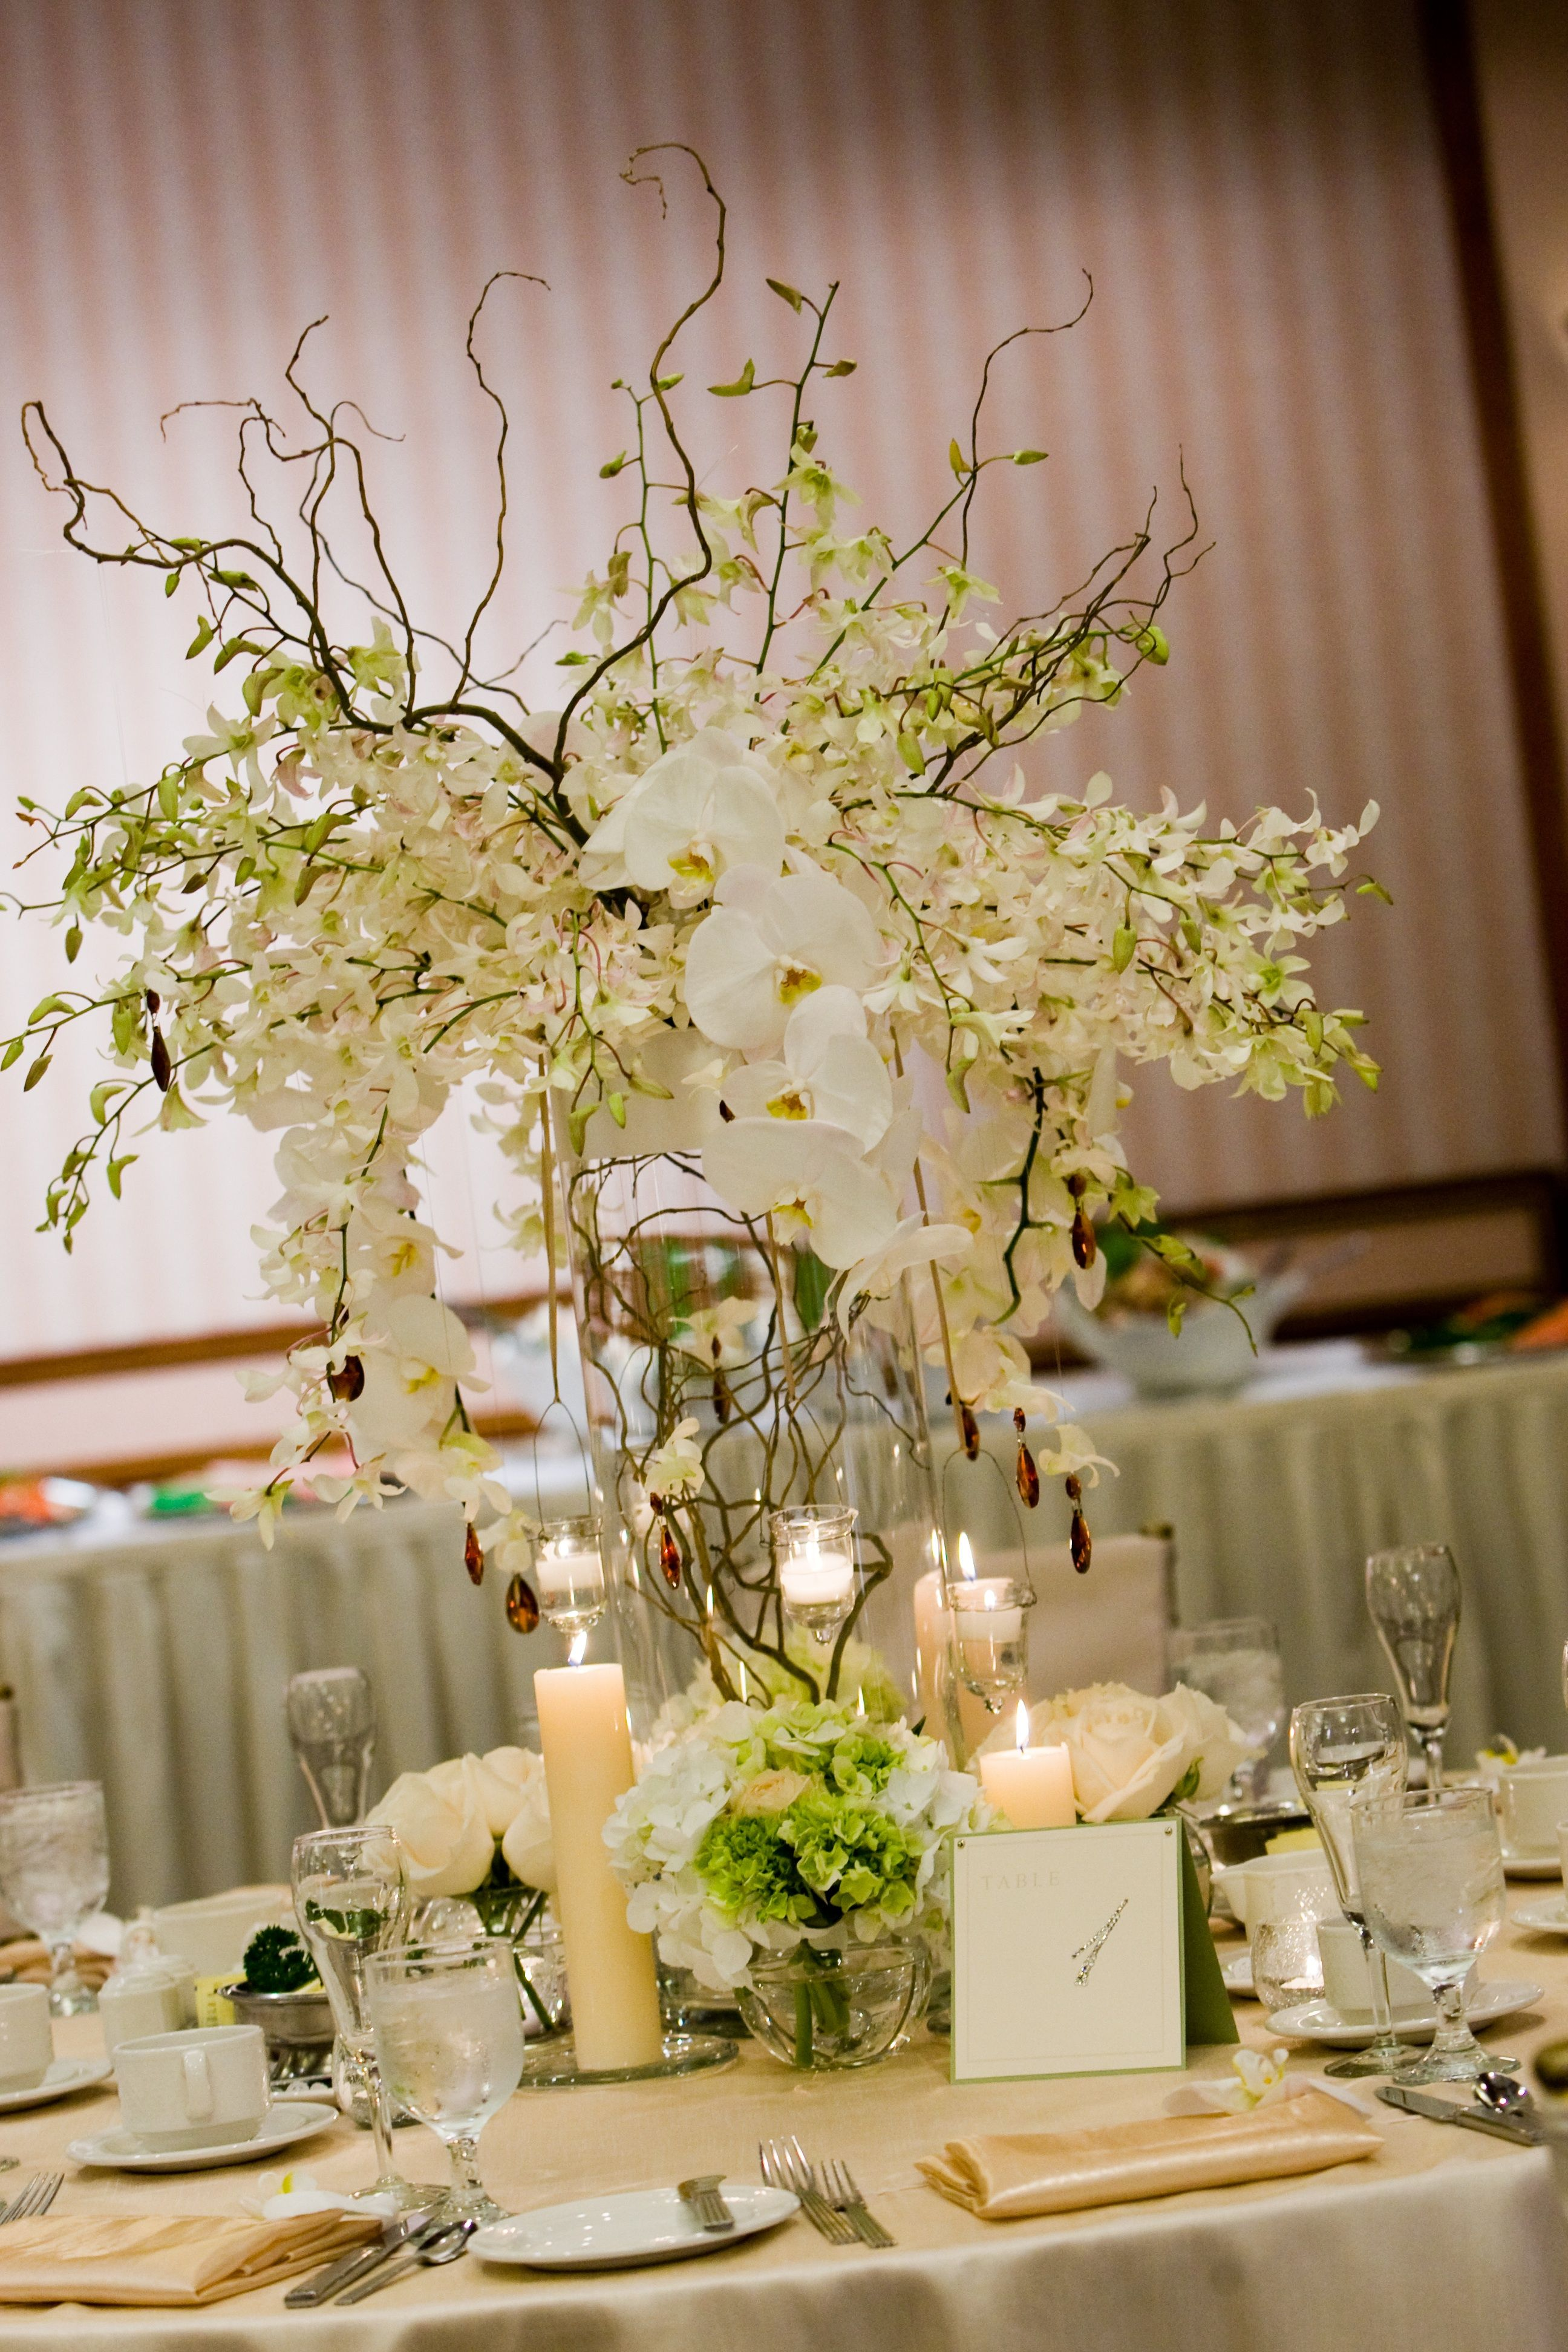 White Dendrobium And Phalaenopsis Orchids Curly Willow And Green Hydrangeas Fini Wedding Flower Decorations Branches Wedding Decor Tall Wedding Centerpieces